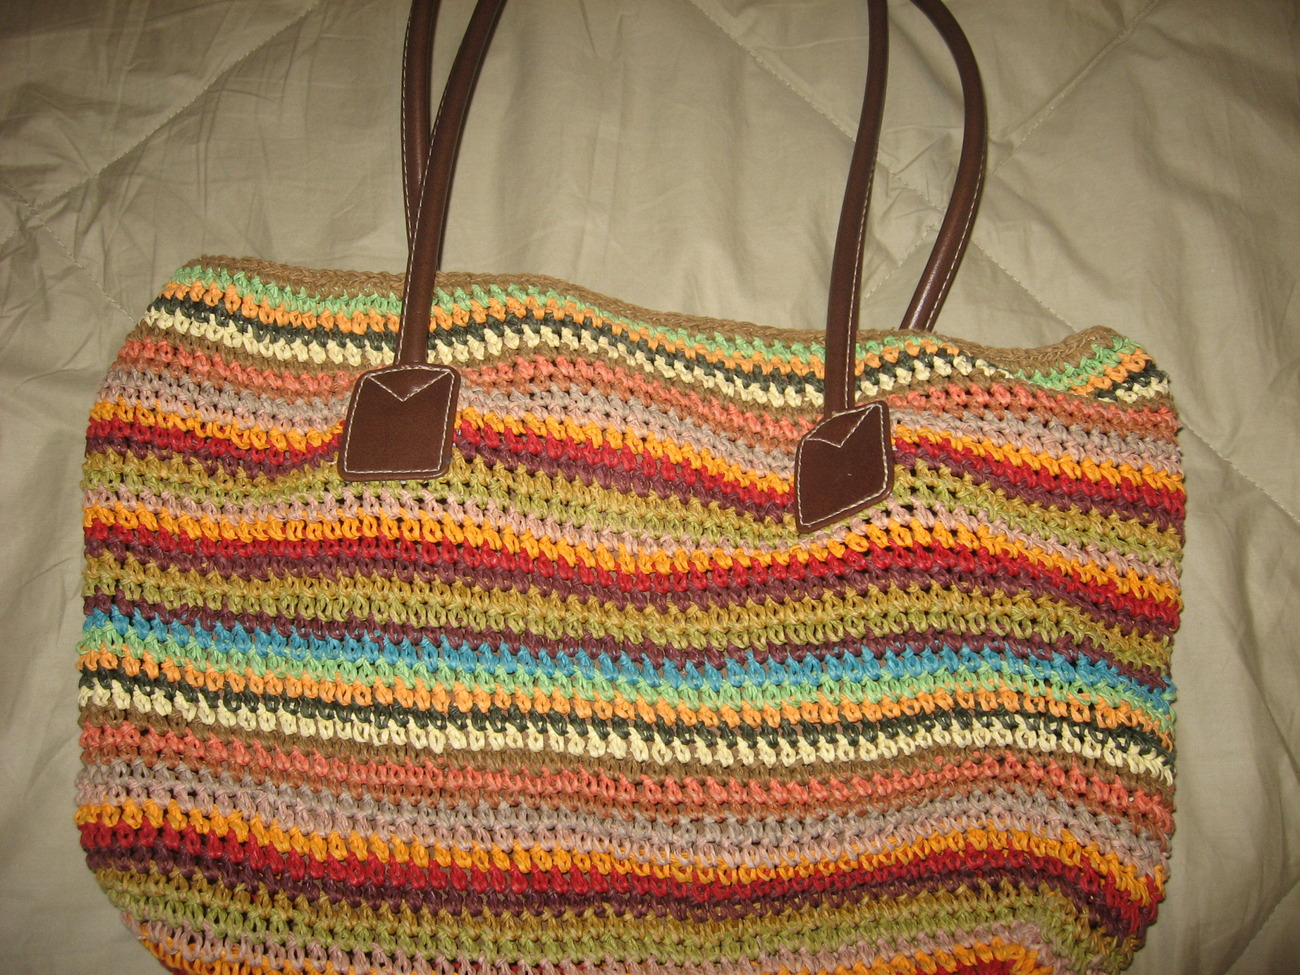 Straw Handbag by Charter Club with colorful stripes